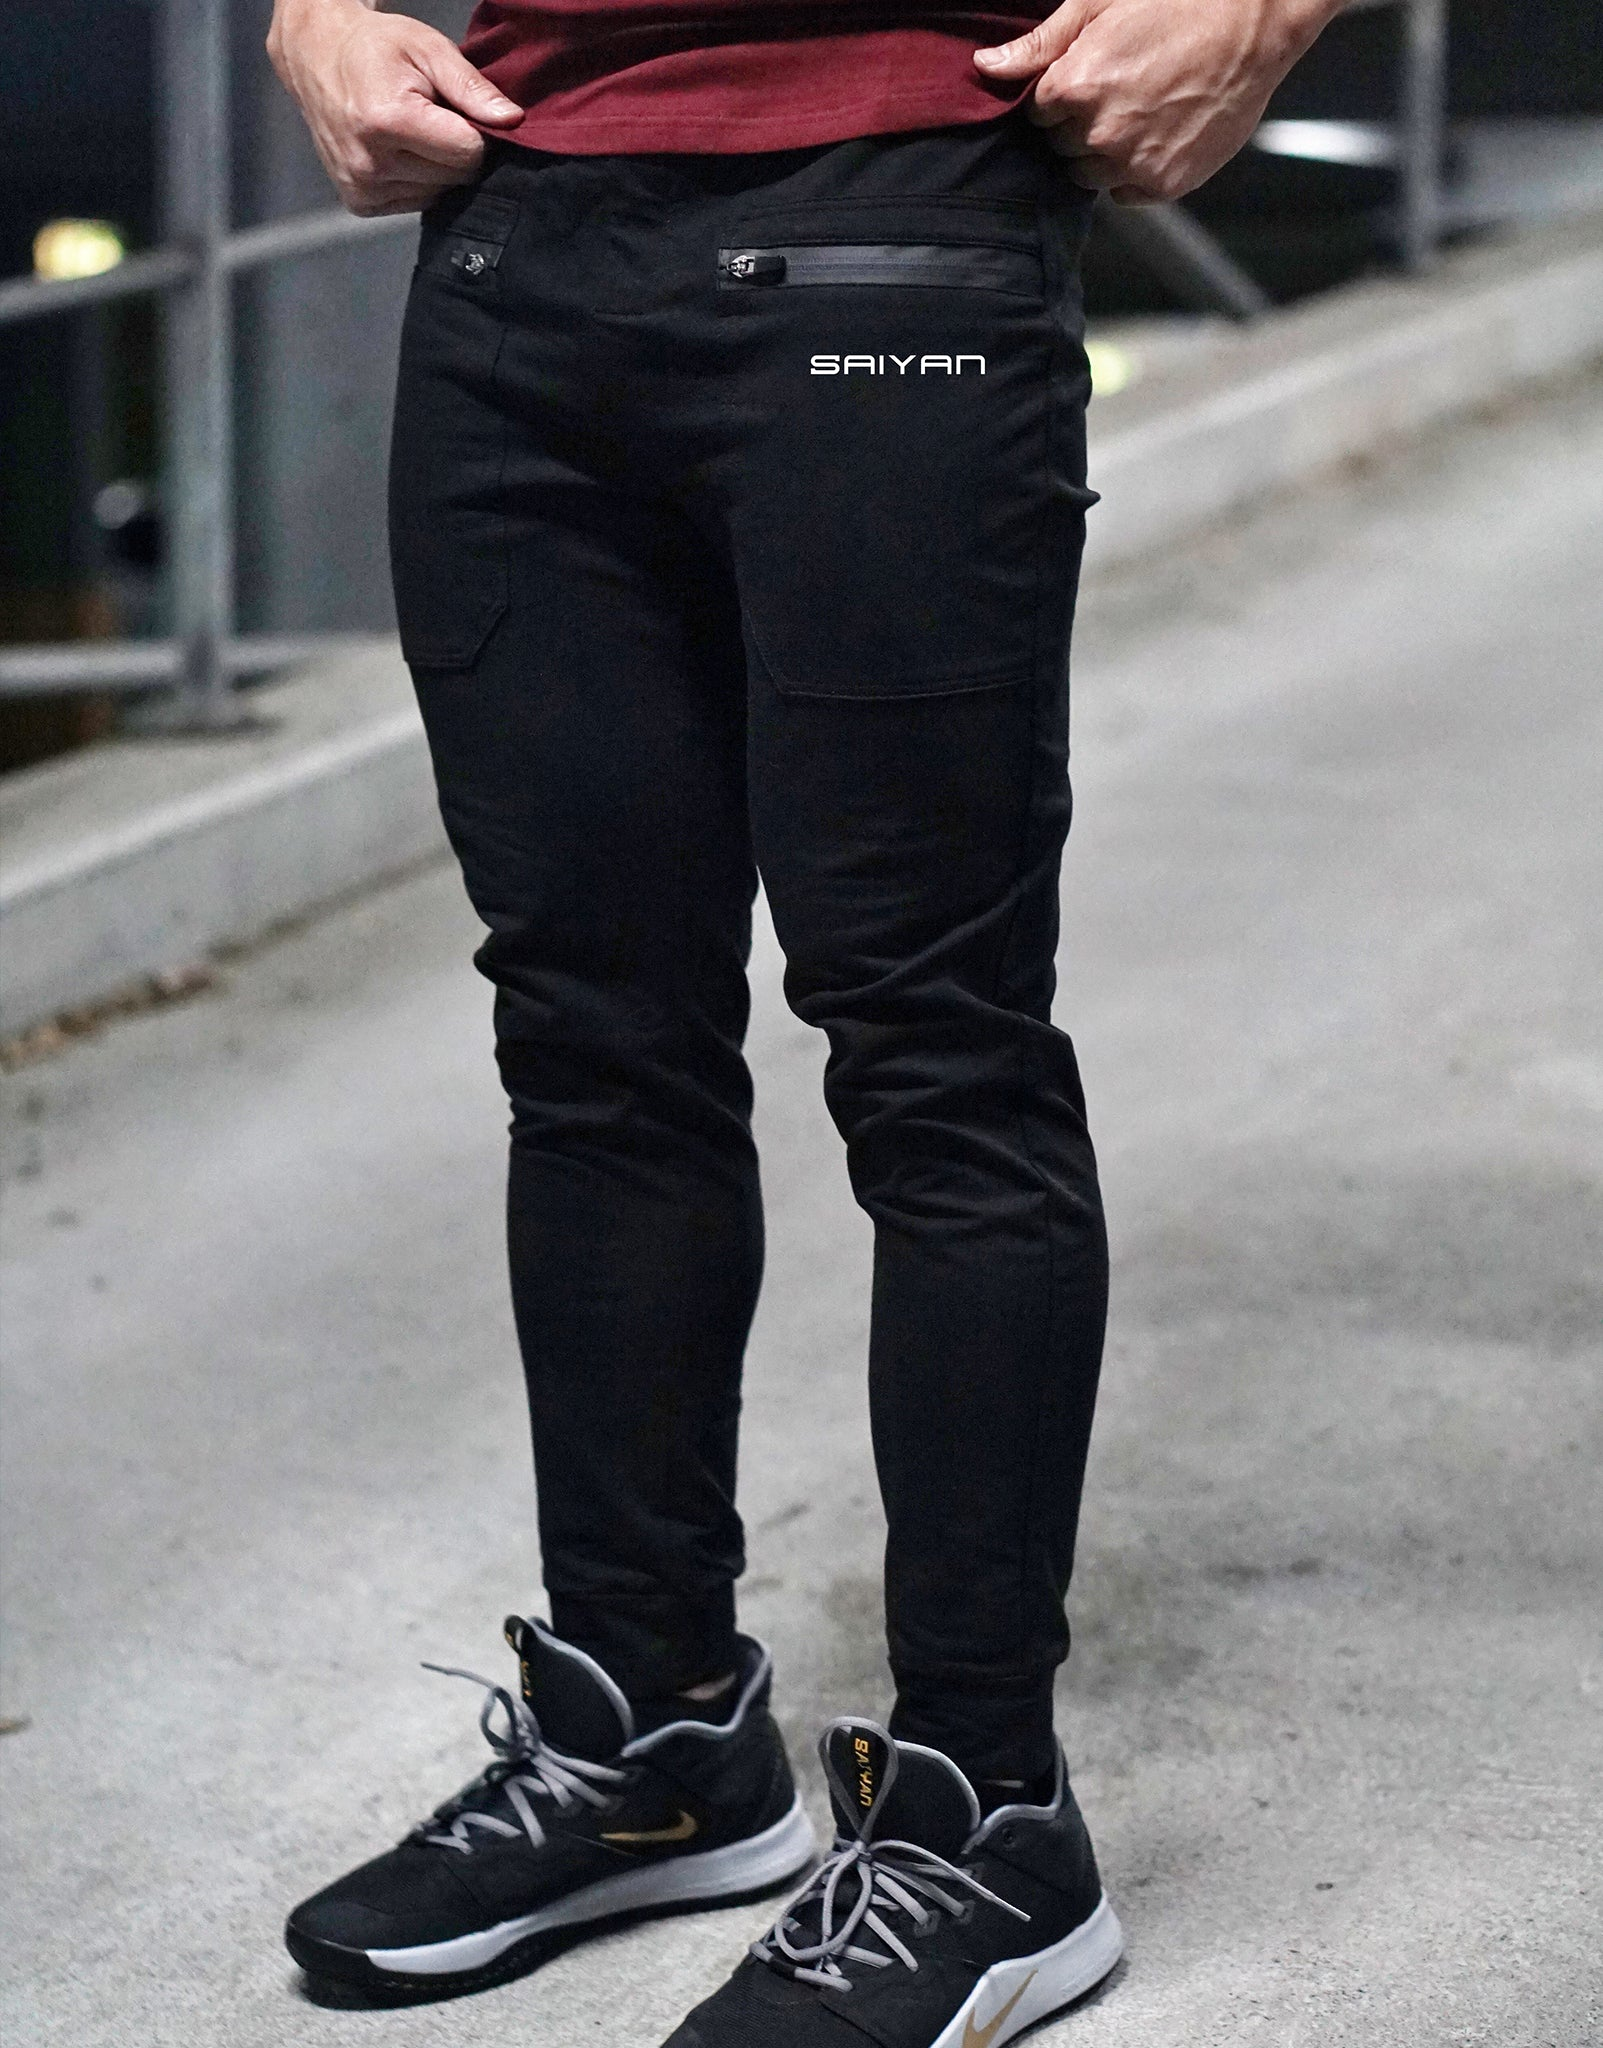 V2 'SAIYAN' Fitted Pants - Elite Black